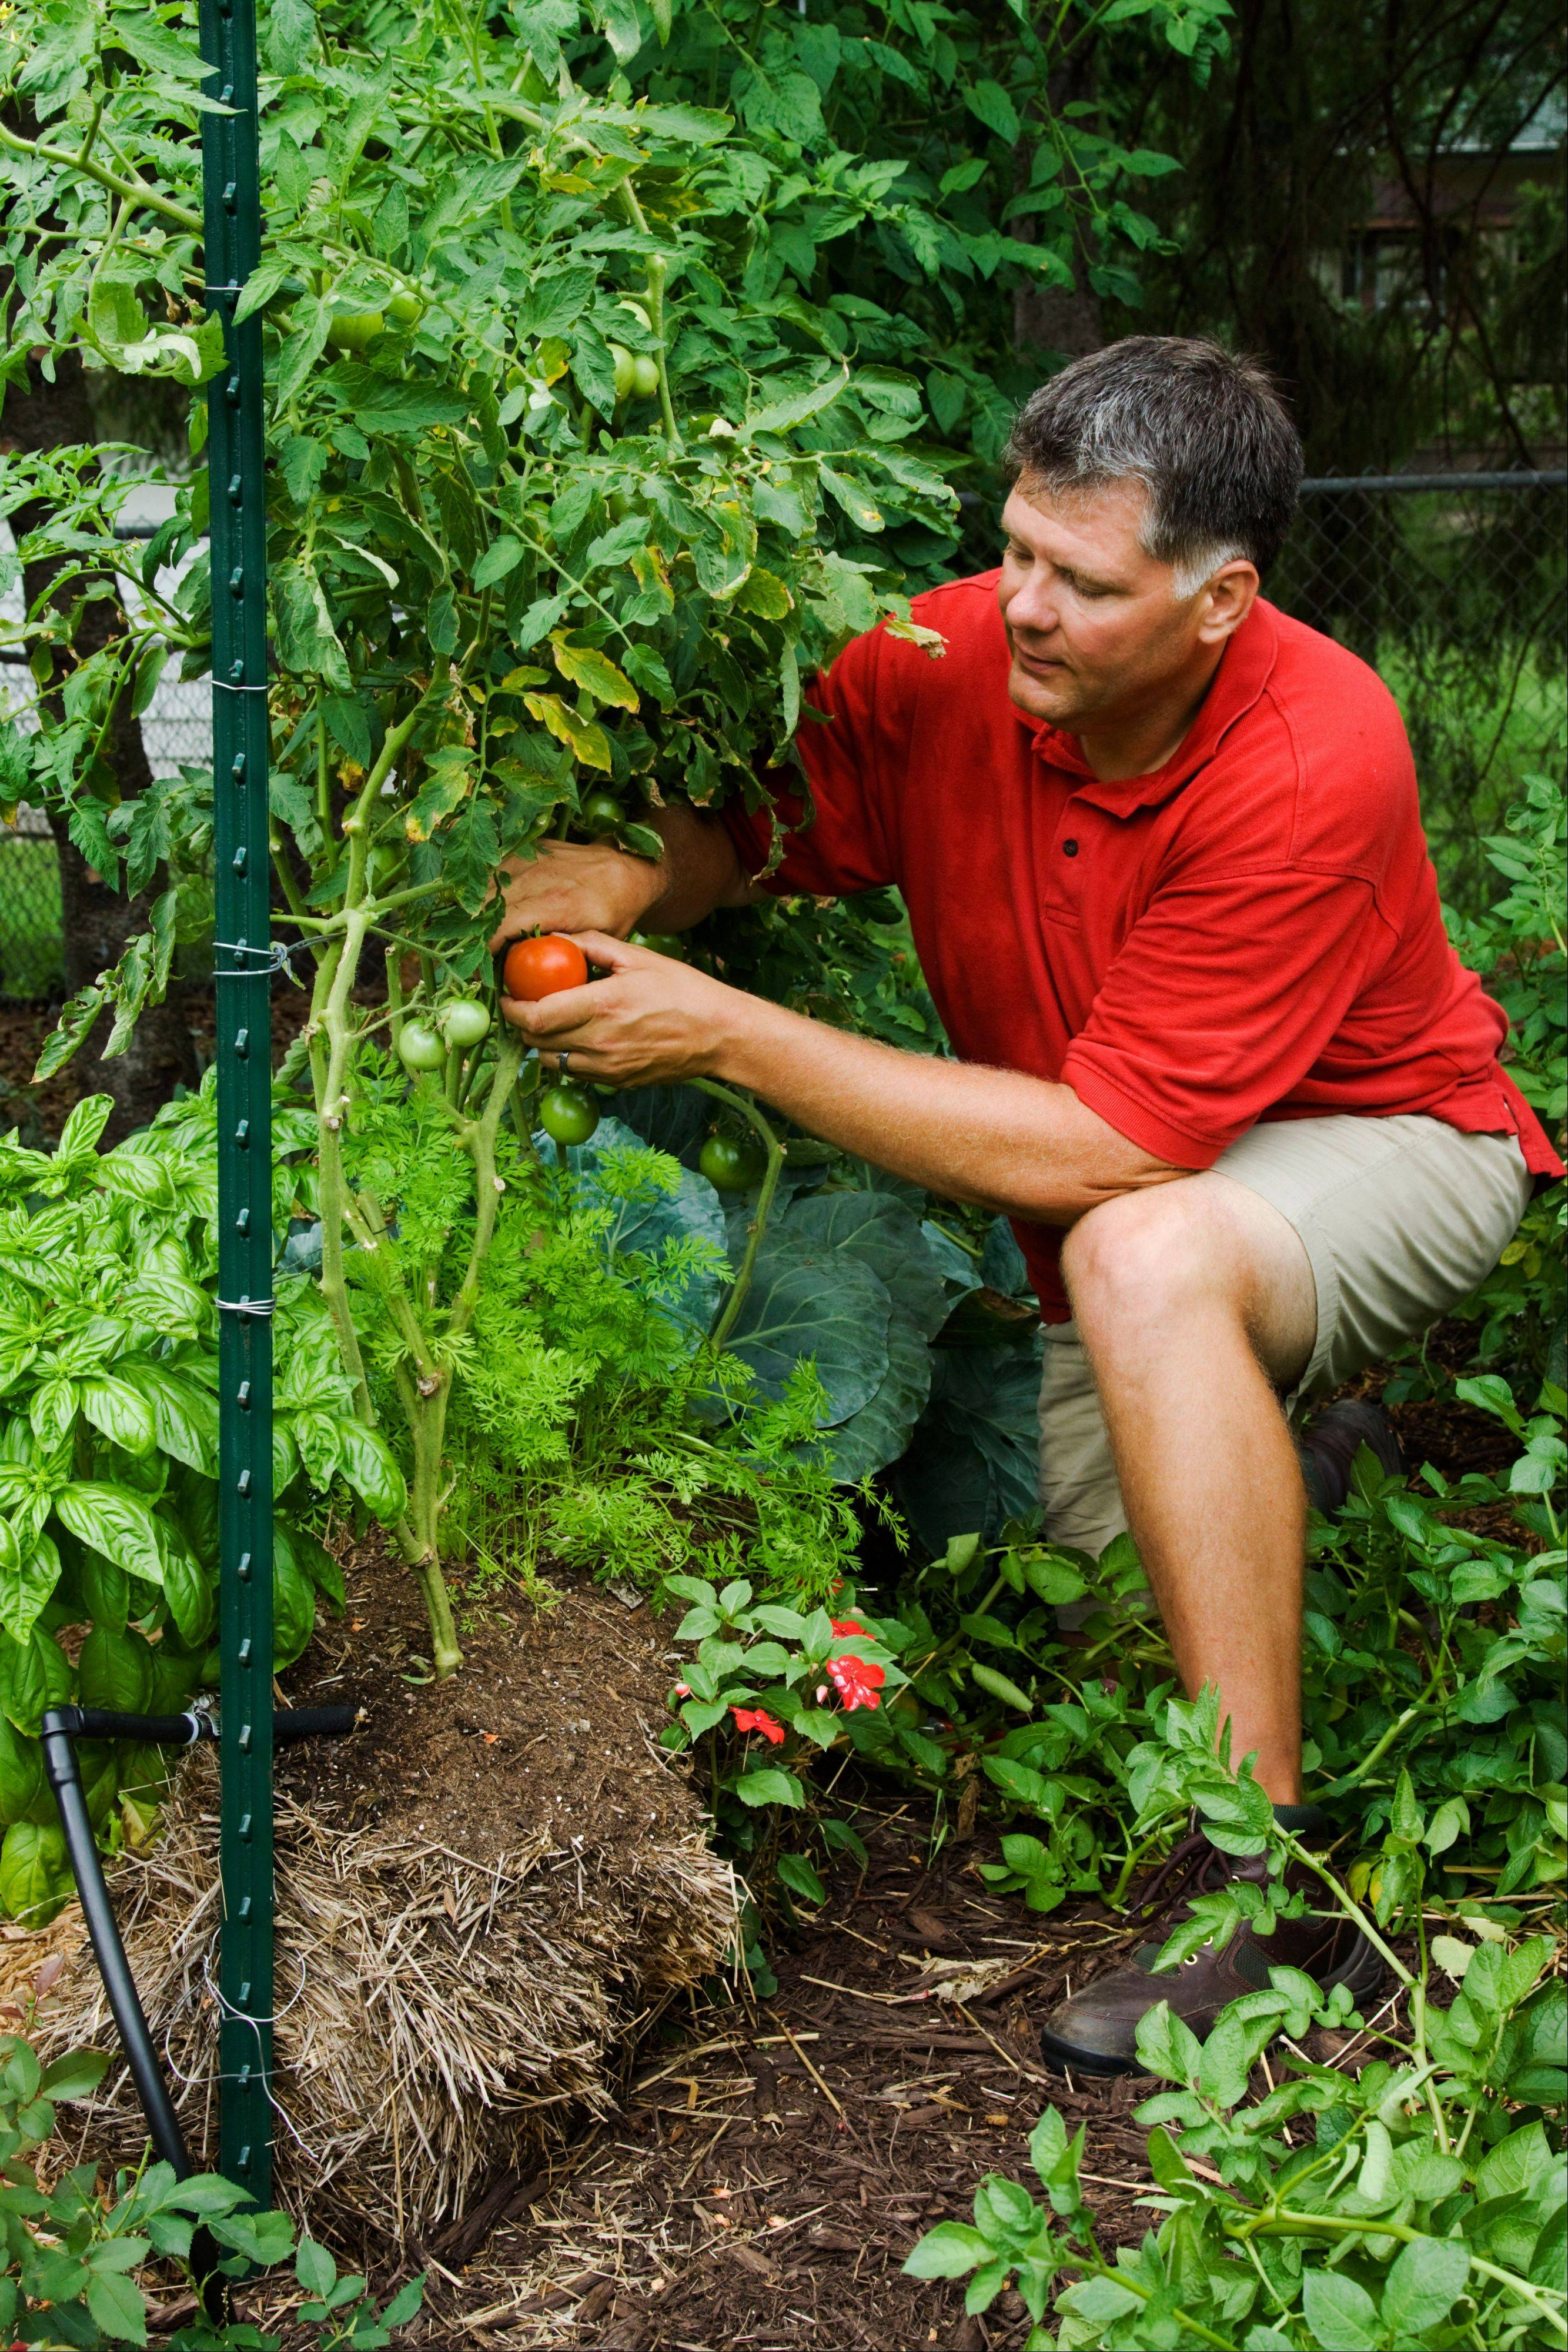 Minnesota author and gardener, Joel Karsten, picks tomatoes from his straw bale garden. Karsten is the leading proponent of a straw-bale gardening movement that has become one of this summer�s hottest gardening trends.